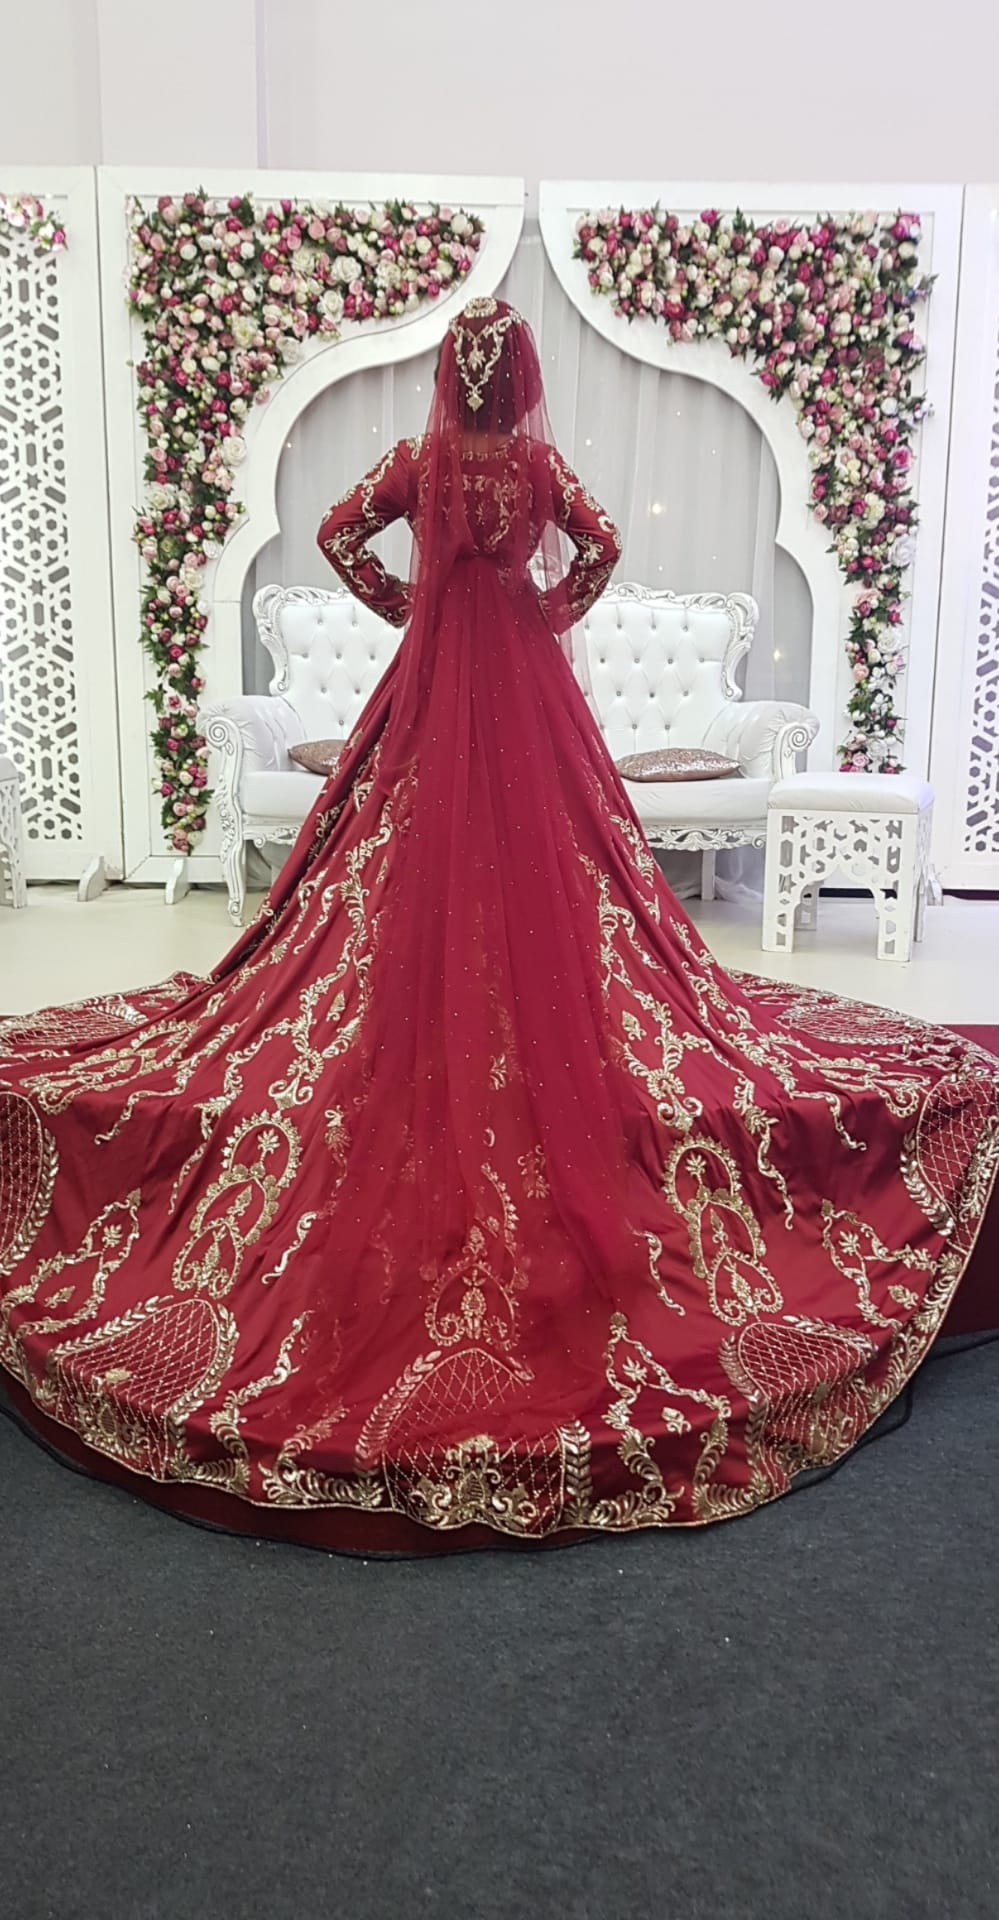 Wedding dresses for brides of Morocco